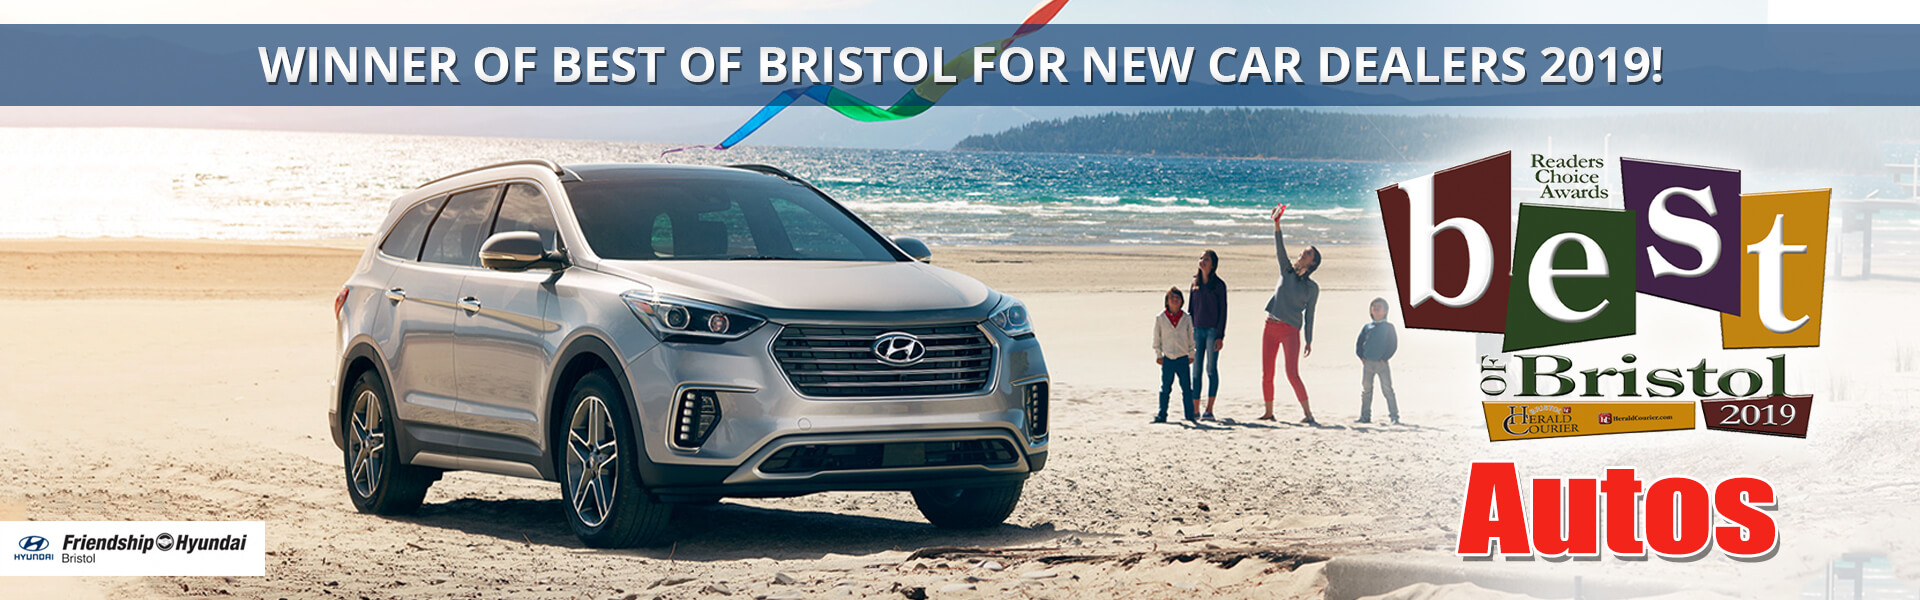 Friendship Hyundai Johnson City >> New Used Car Dealers Auto Dealers Serving Tennessee Virginia